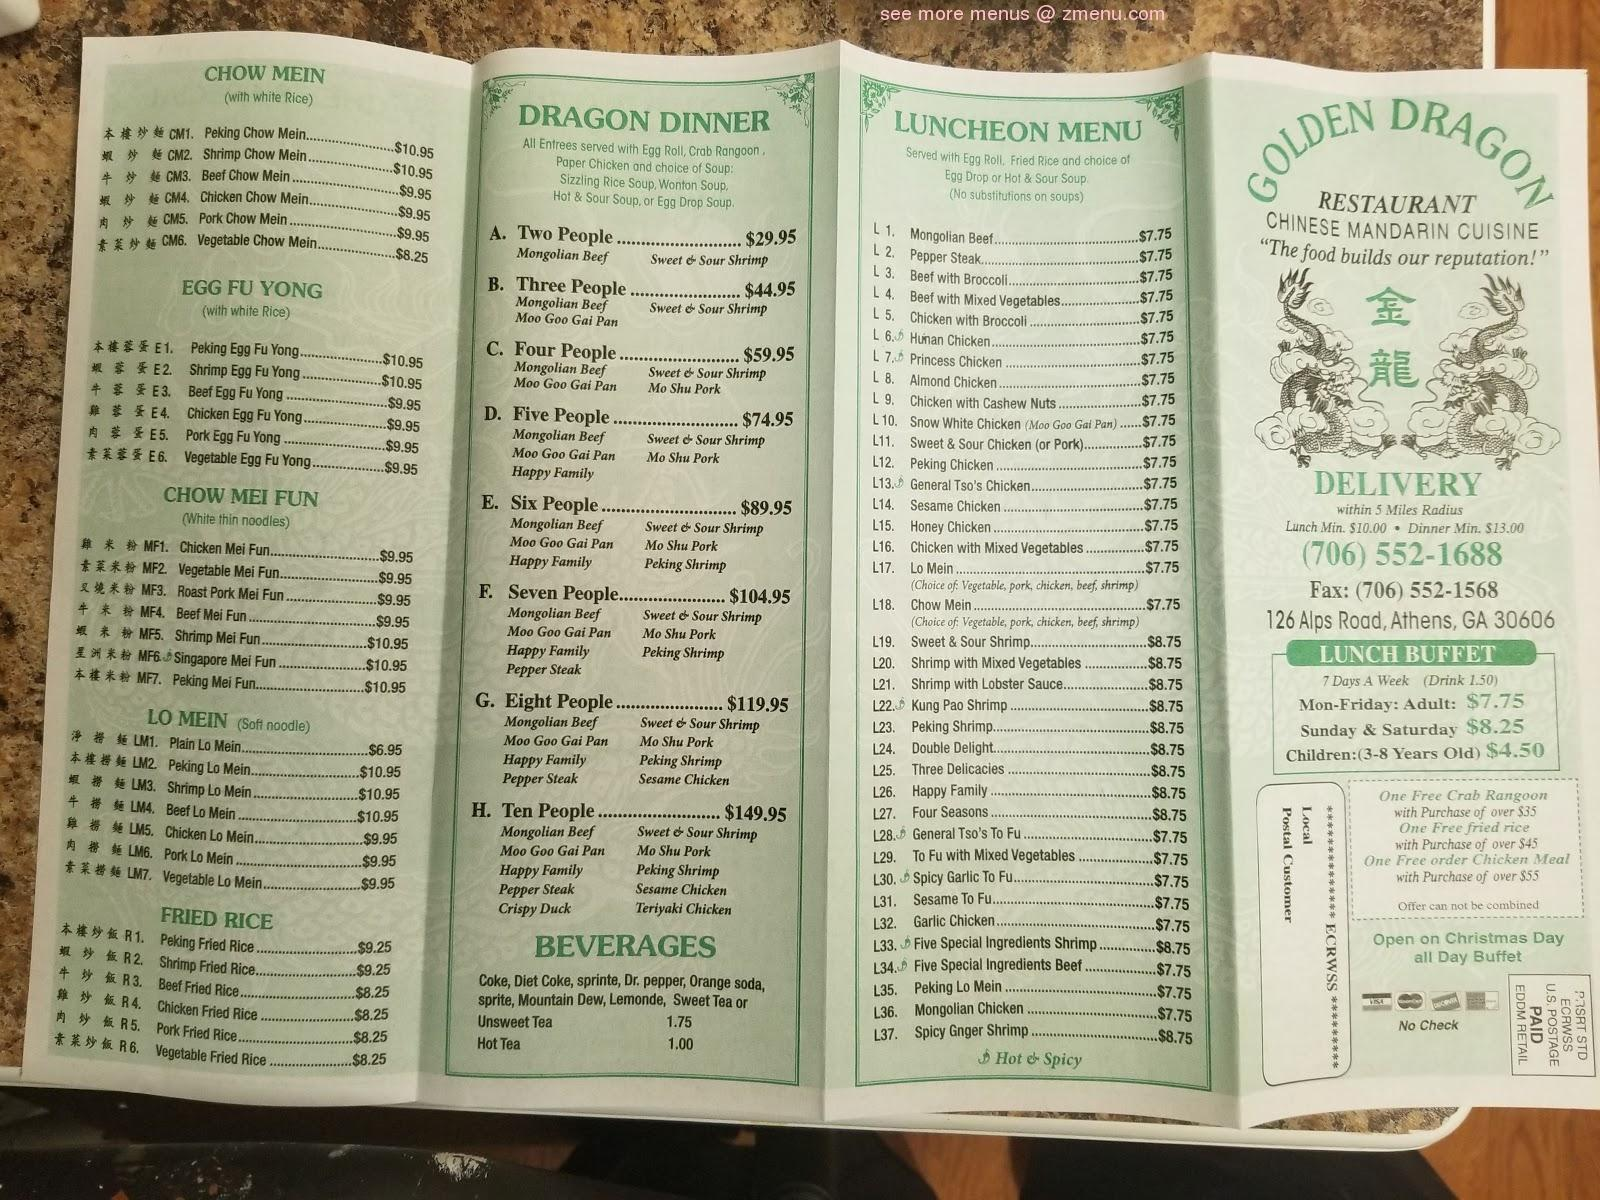 Golden dragon athens lunch menu steroid ointment for poison ivy